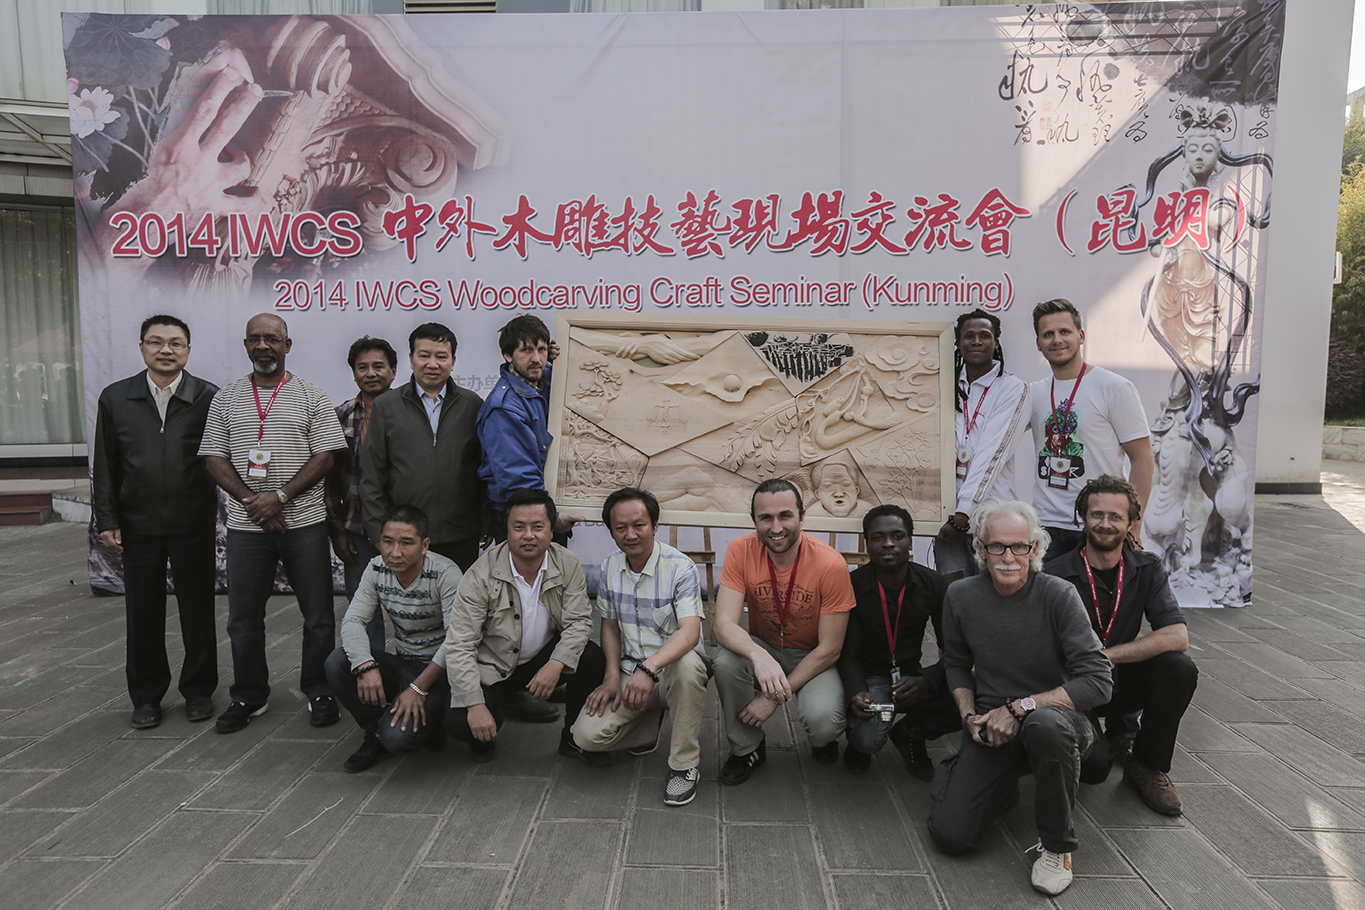 2014 World Wood Day - Woodcarving Collaboration in Kunming